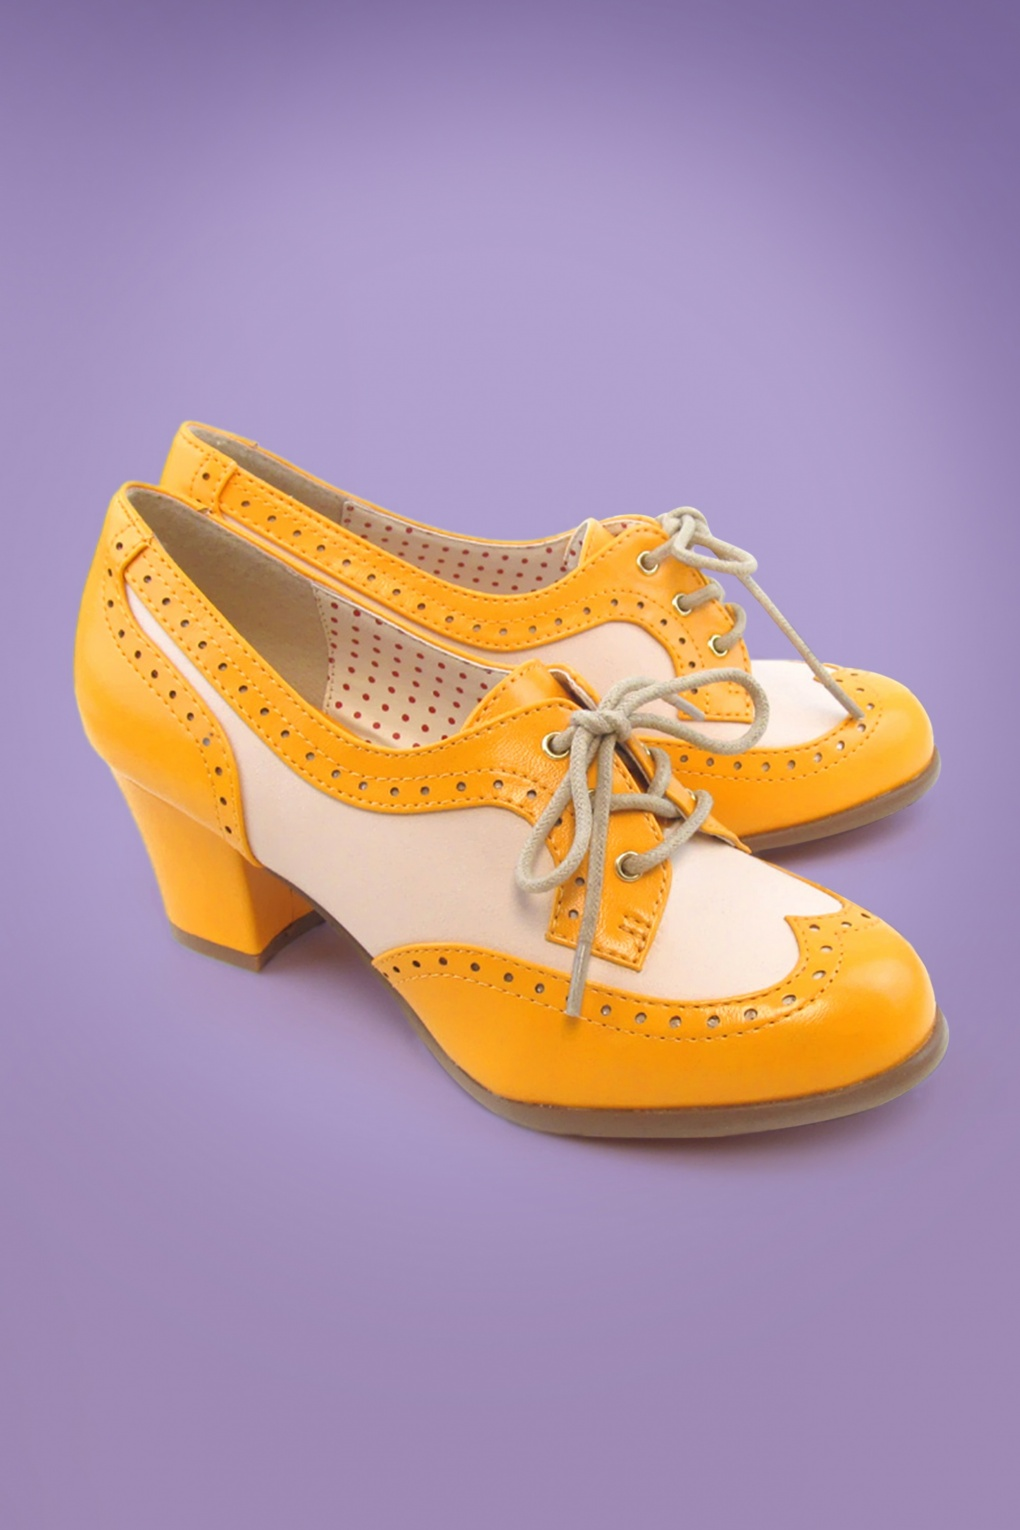 Art Deco Shoes Styles of the 1920s and 1930s 40s Remmy Oxford Shoes in Mustard �71.79 AT vintagedancer.com